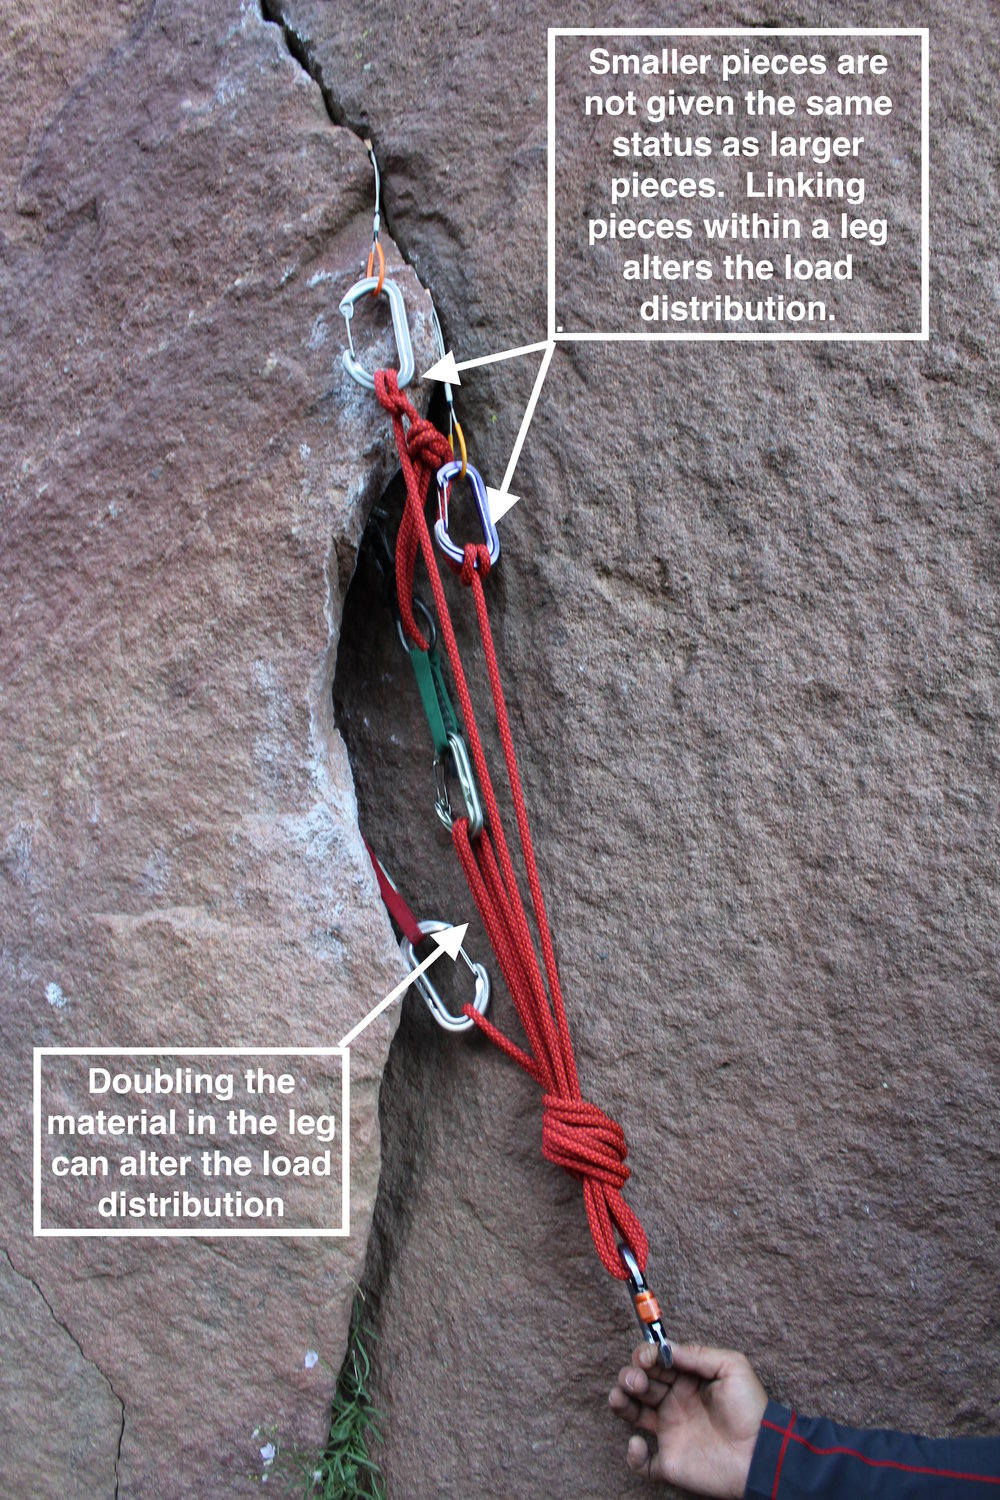 The concept of equalization presumes that each component is equally valuable.  But, even perfect placements in perfect rock do not alway have equal load bearing properties, as pictured here.  Anchor builders might instead make gestures to prioritize the strongest pieces, to equitably distribute load, rather than equalize.